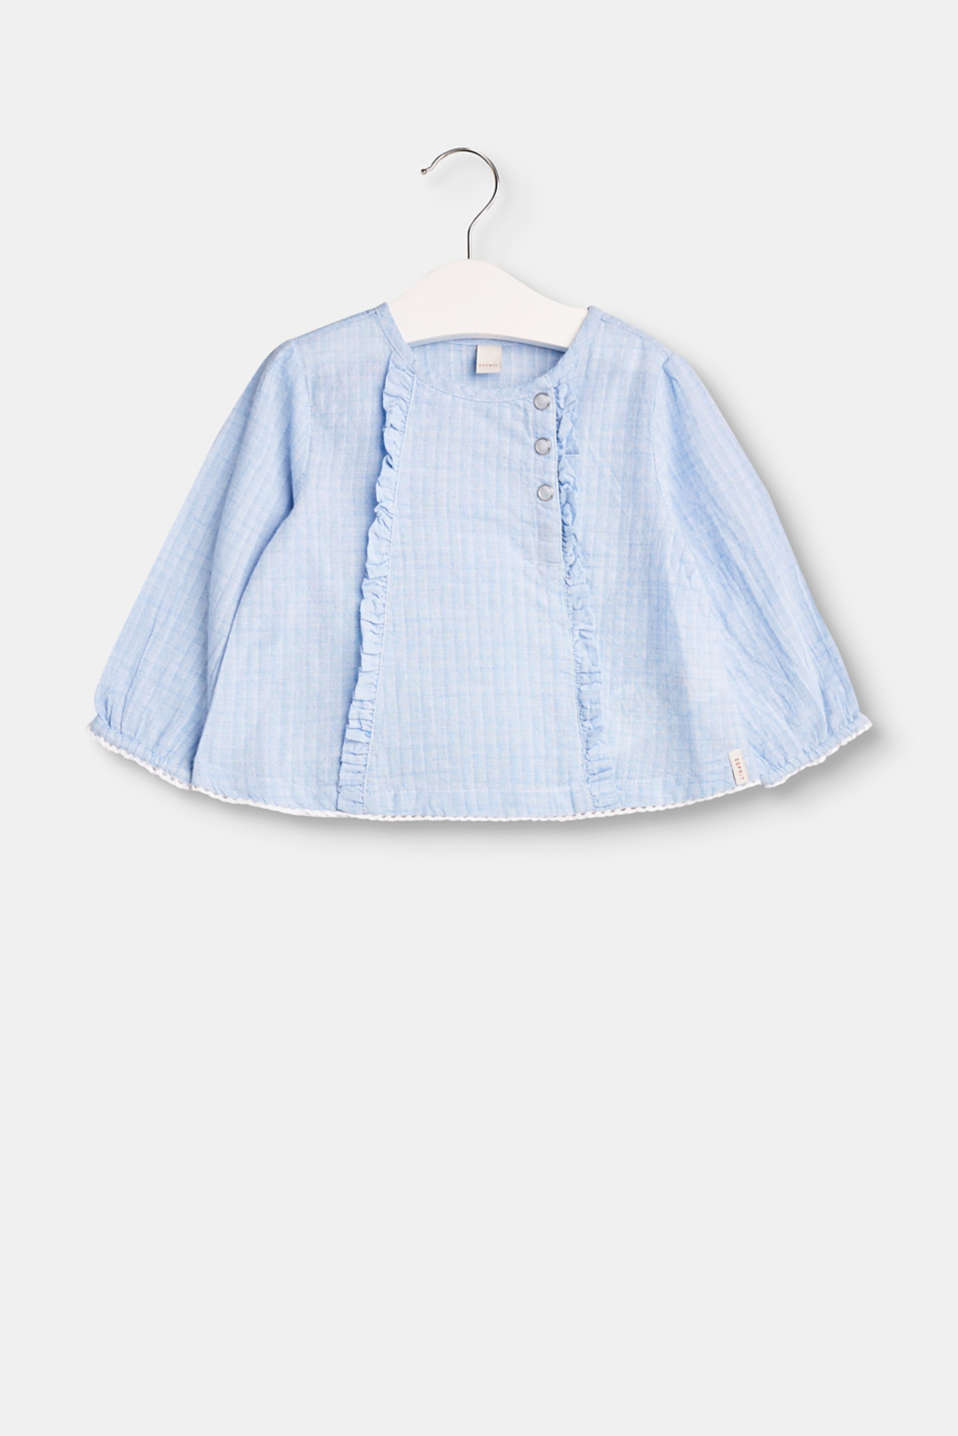 Esprit - Textured cotton blouse with frills